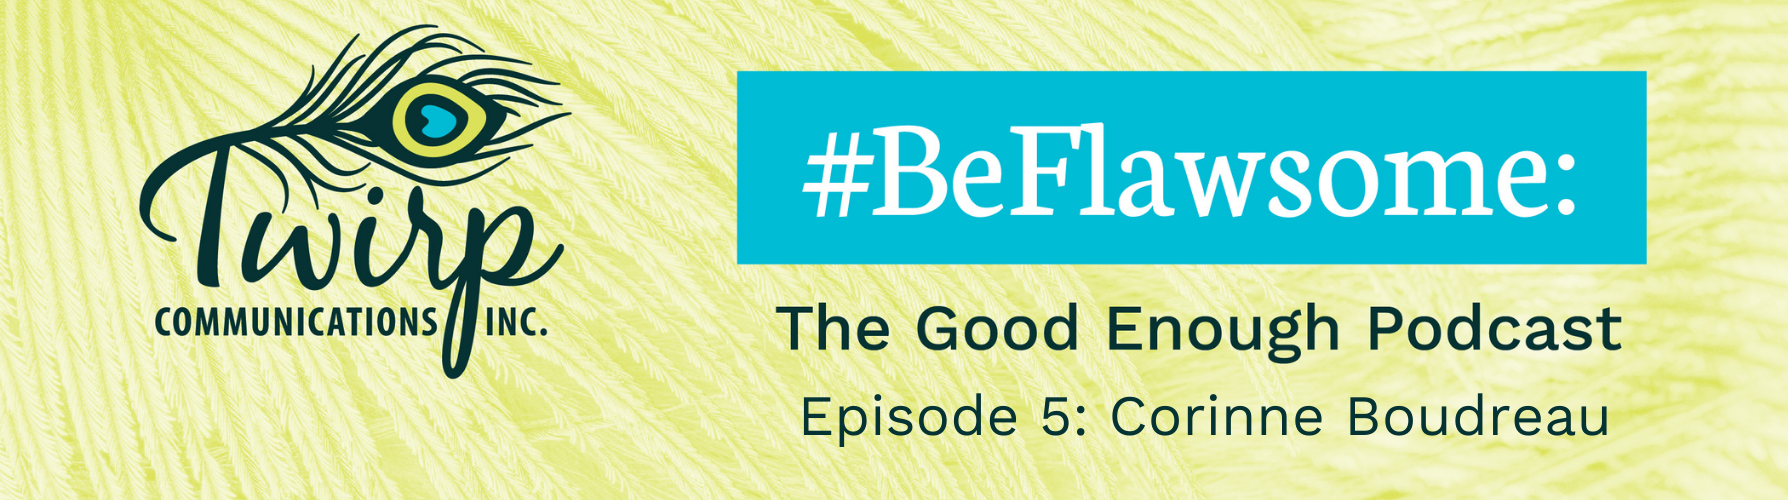 #BeFlawsome Podcast Episode 5 Banner